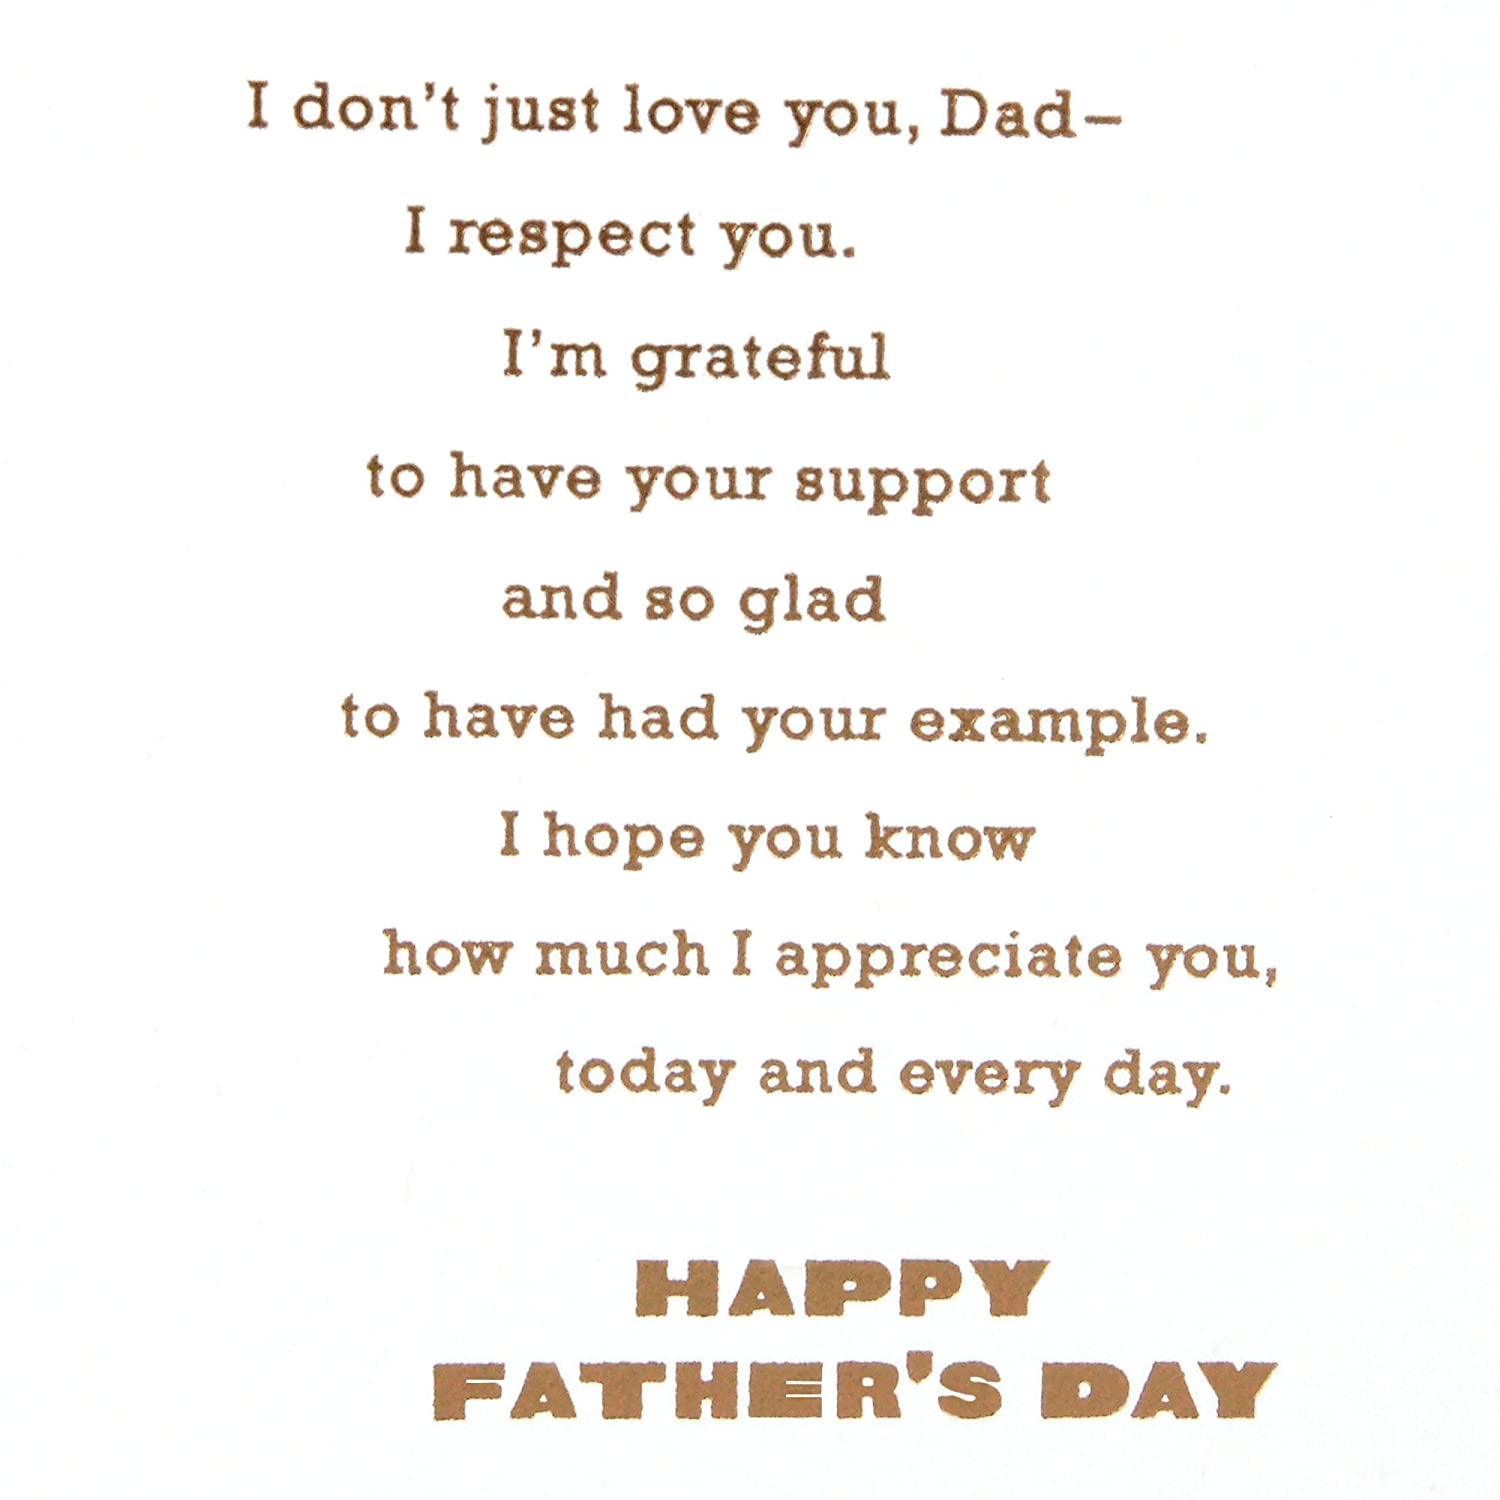 Hallmark Mahogany Father's Day Greeting Card for Daddy from Adult Child (I  Love and Respect You)